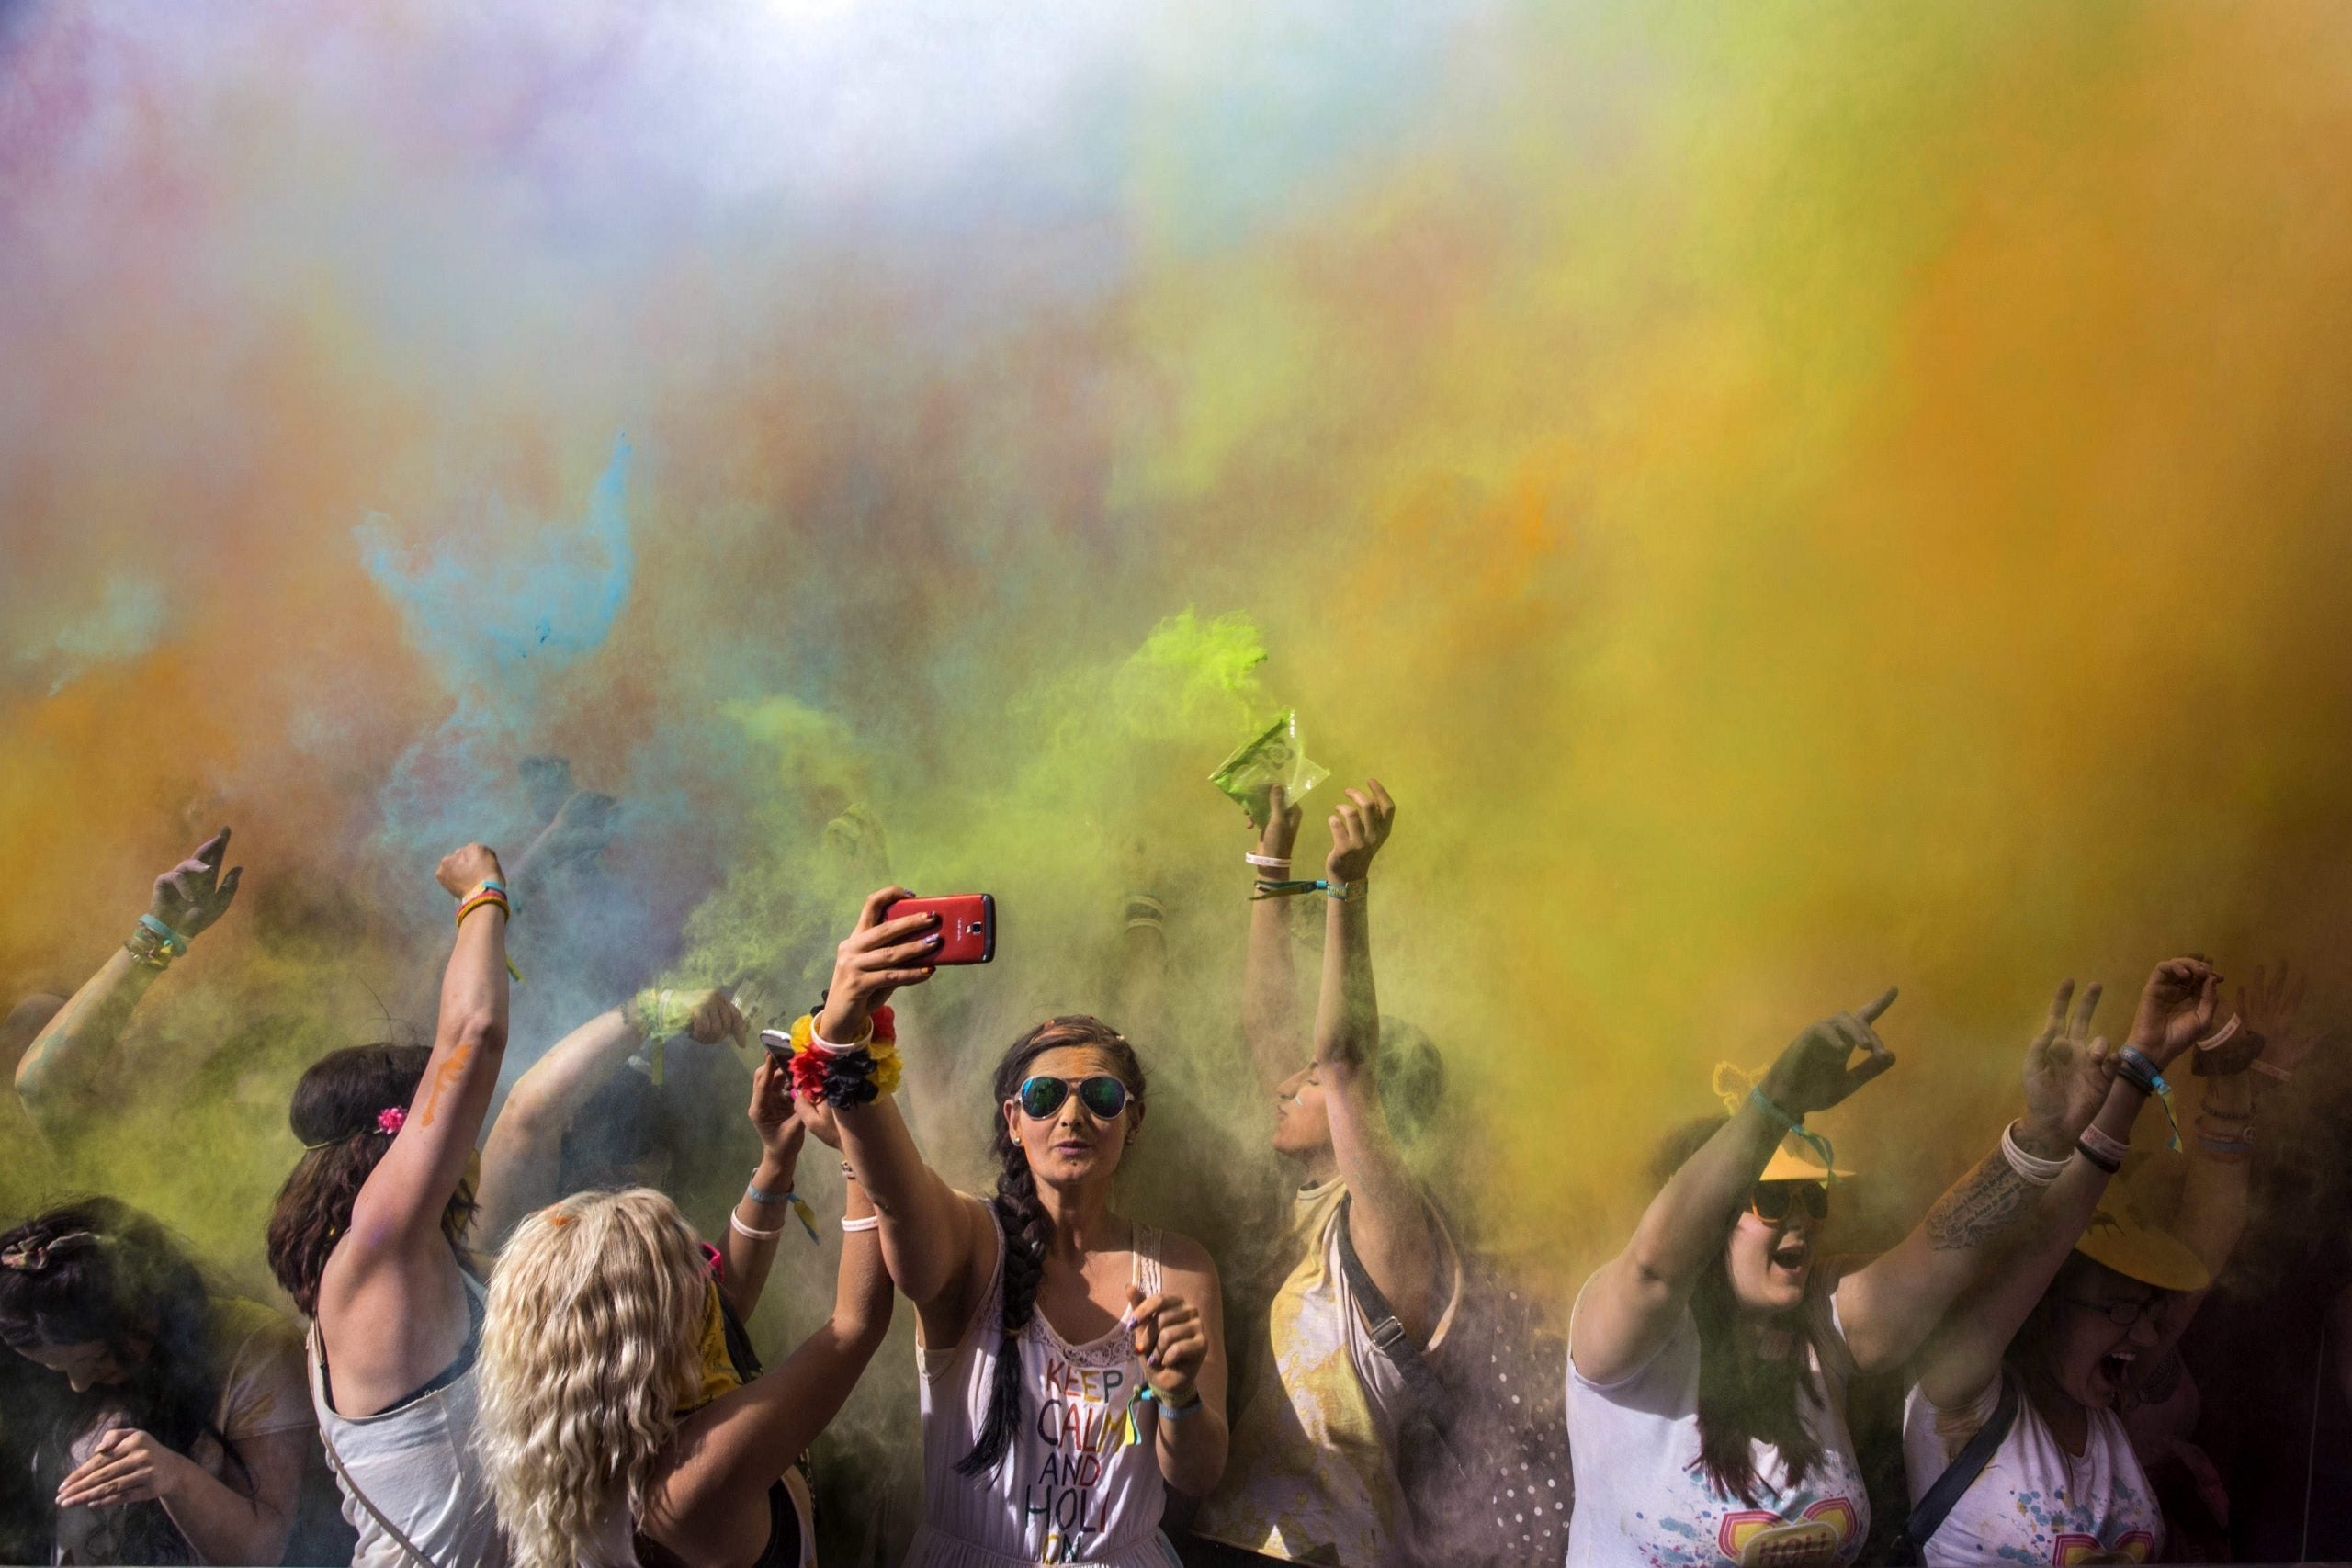 How the festival of Holi has become a textbook case of cultural appropriation for profit